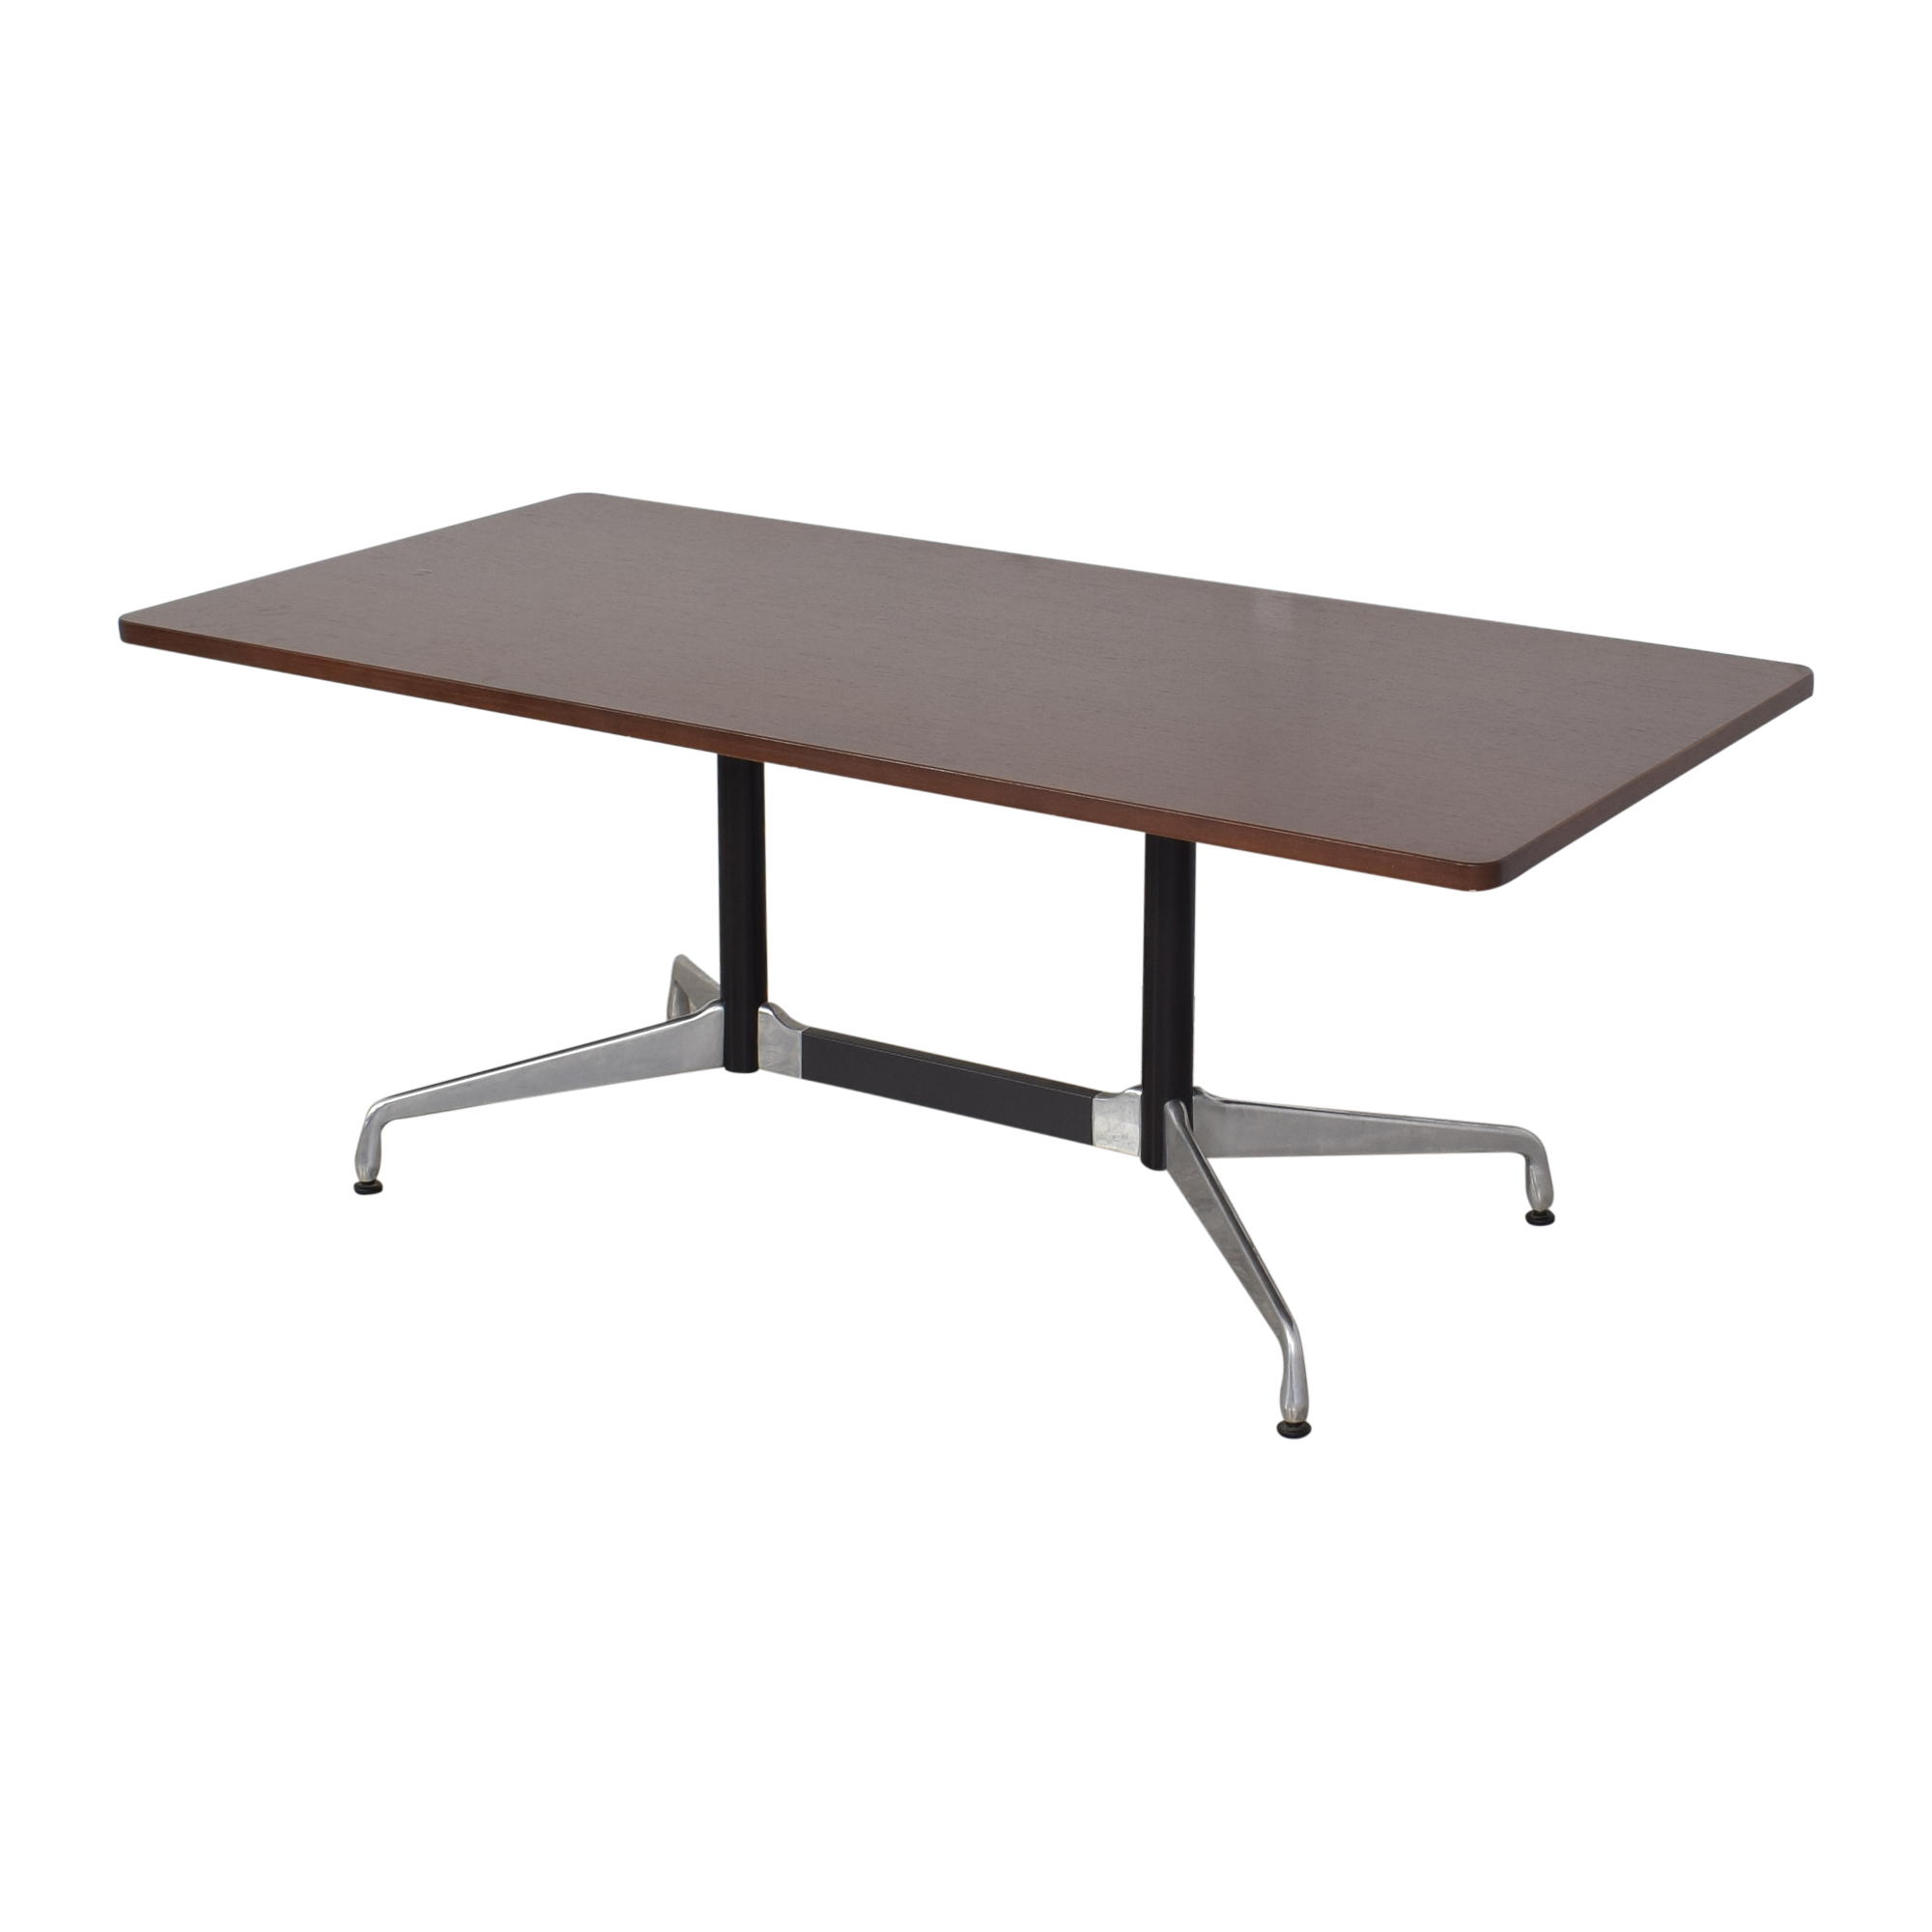 Herman Millier Eames Table with Rectangular Top and Segmented Base Herman Miller